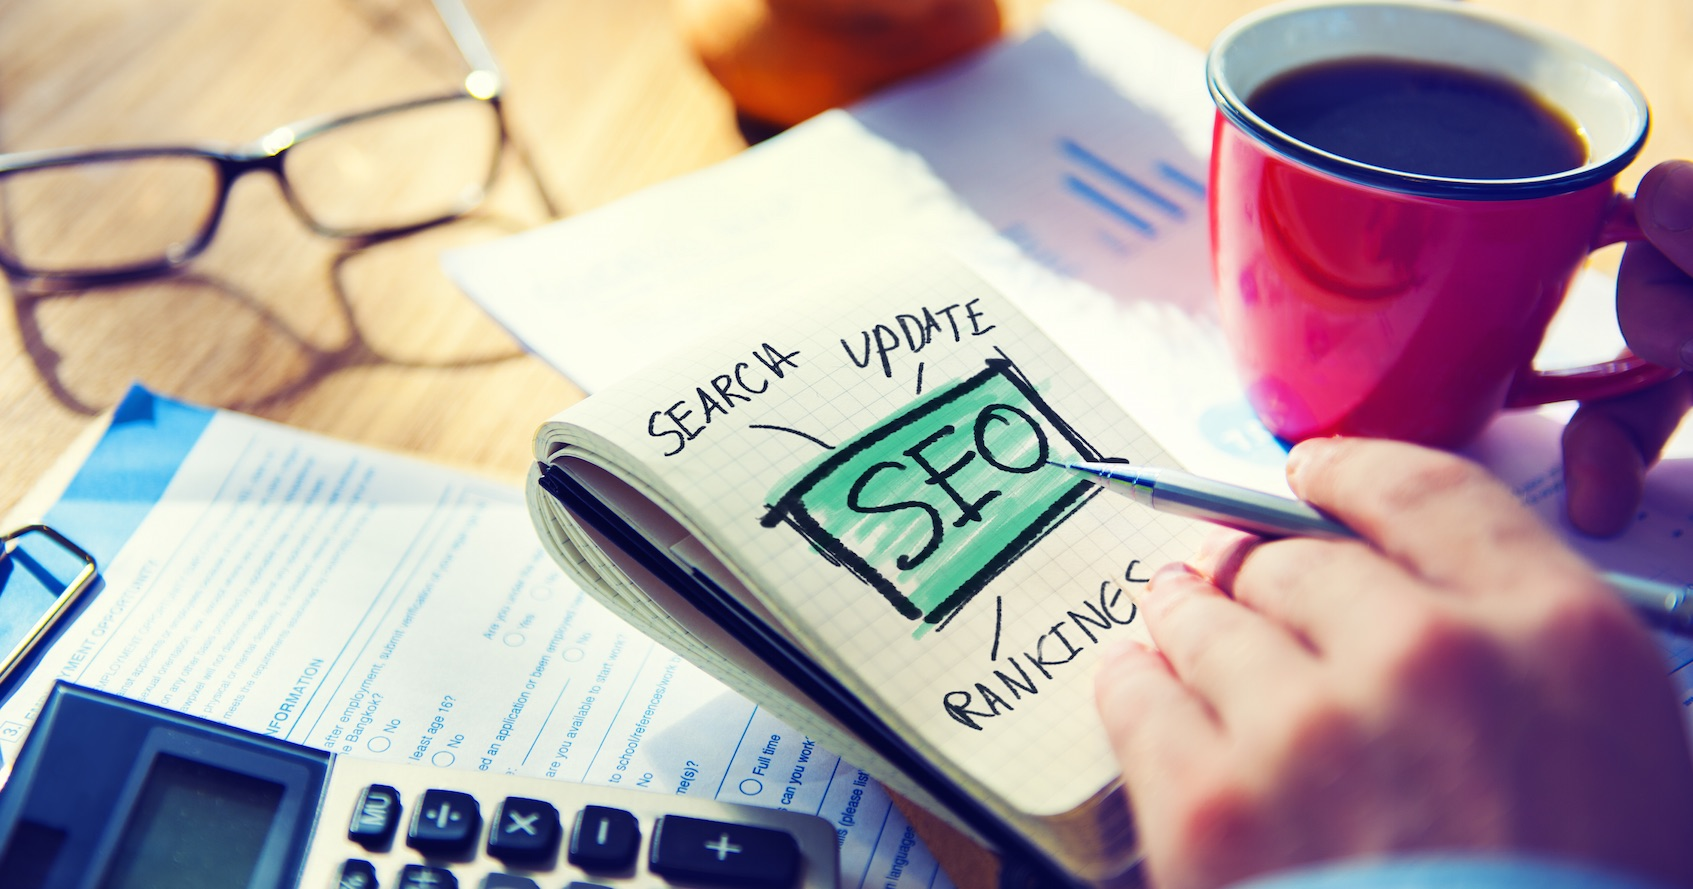 Guest Post on BEAUTY Niche Sites Link Building Blogging White Hat SEO